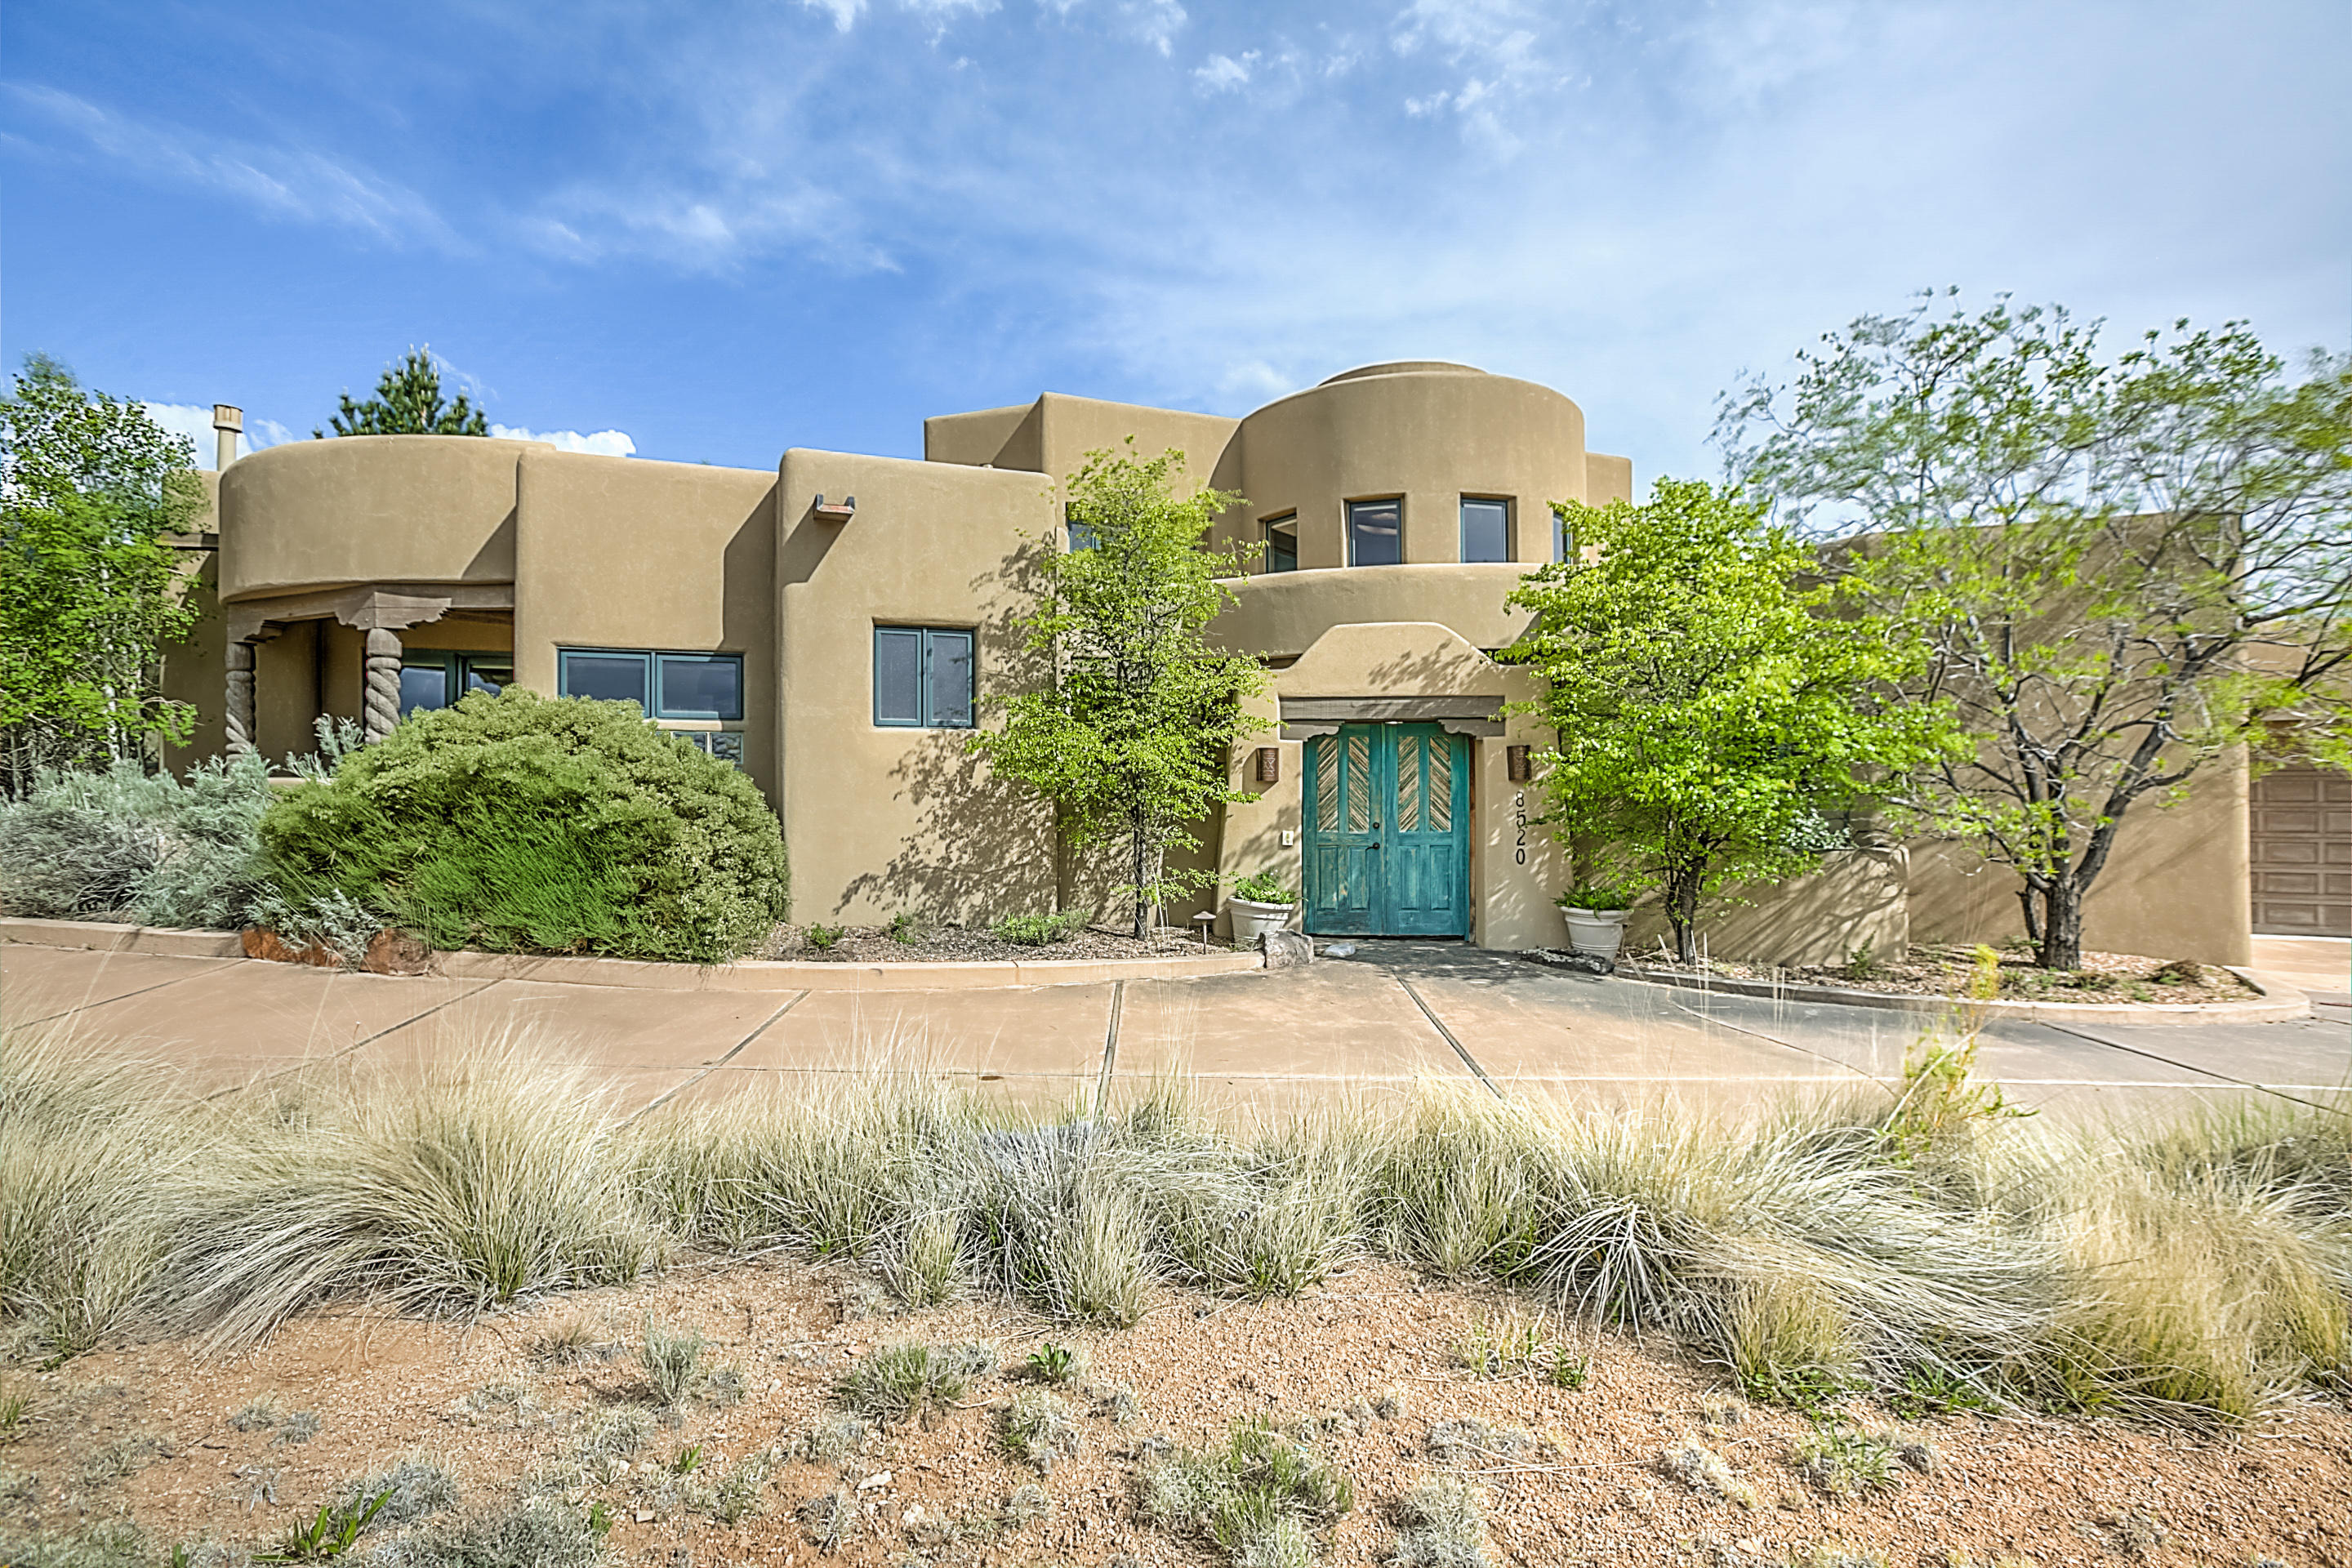 8520 SNAKEDANCE COURT NE, ALBUQUERQUE, NM 87111